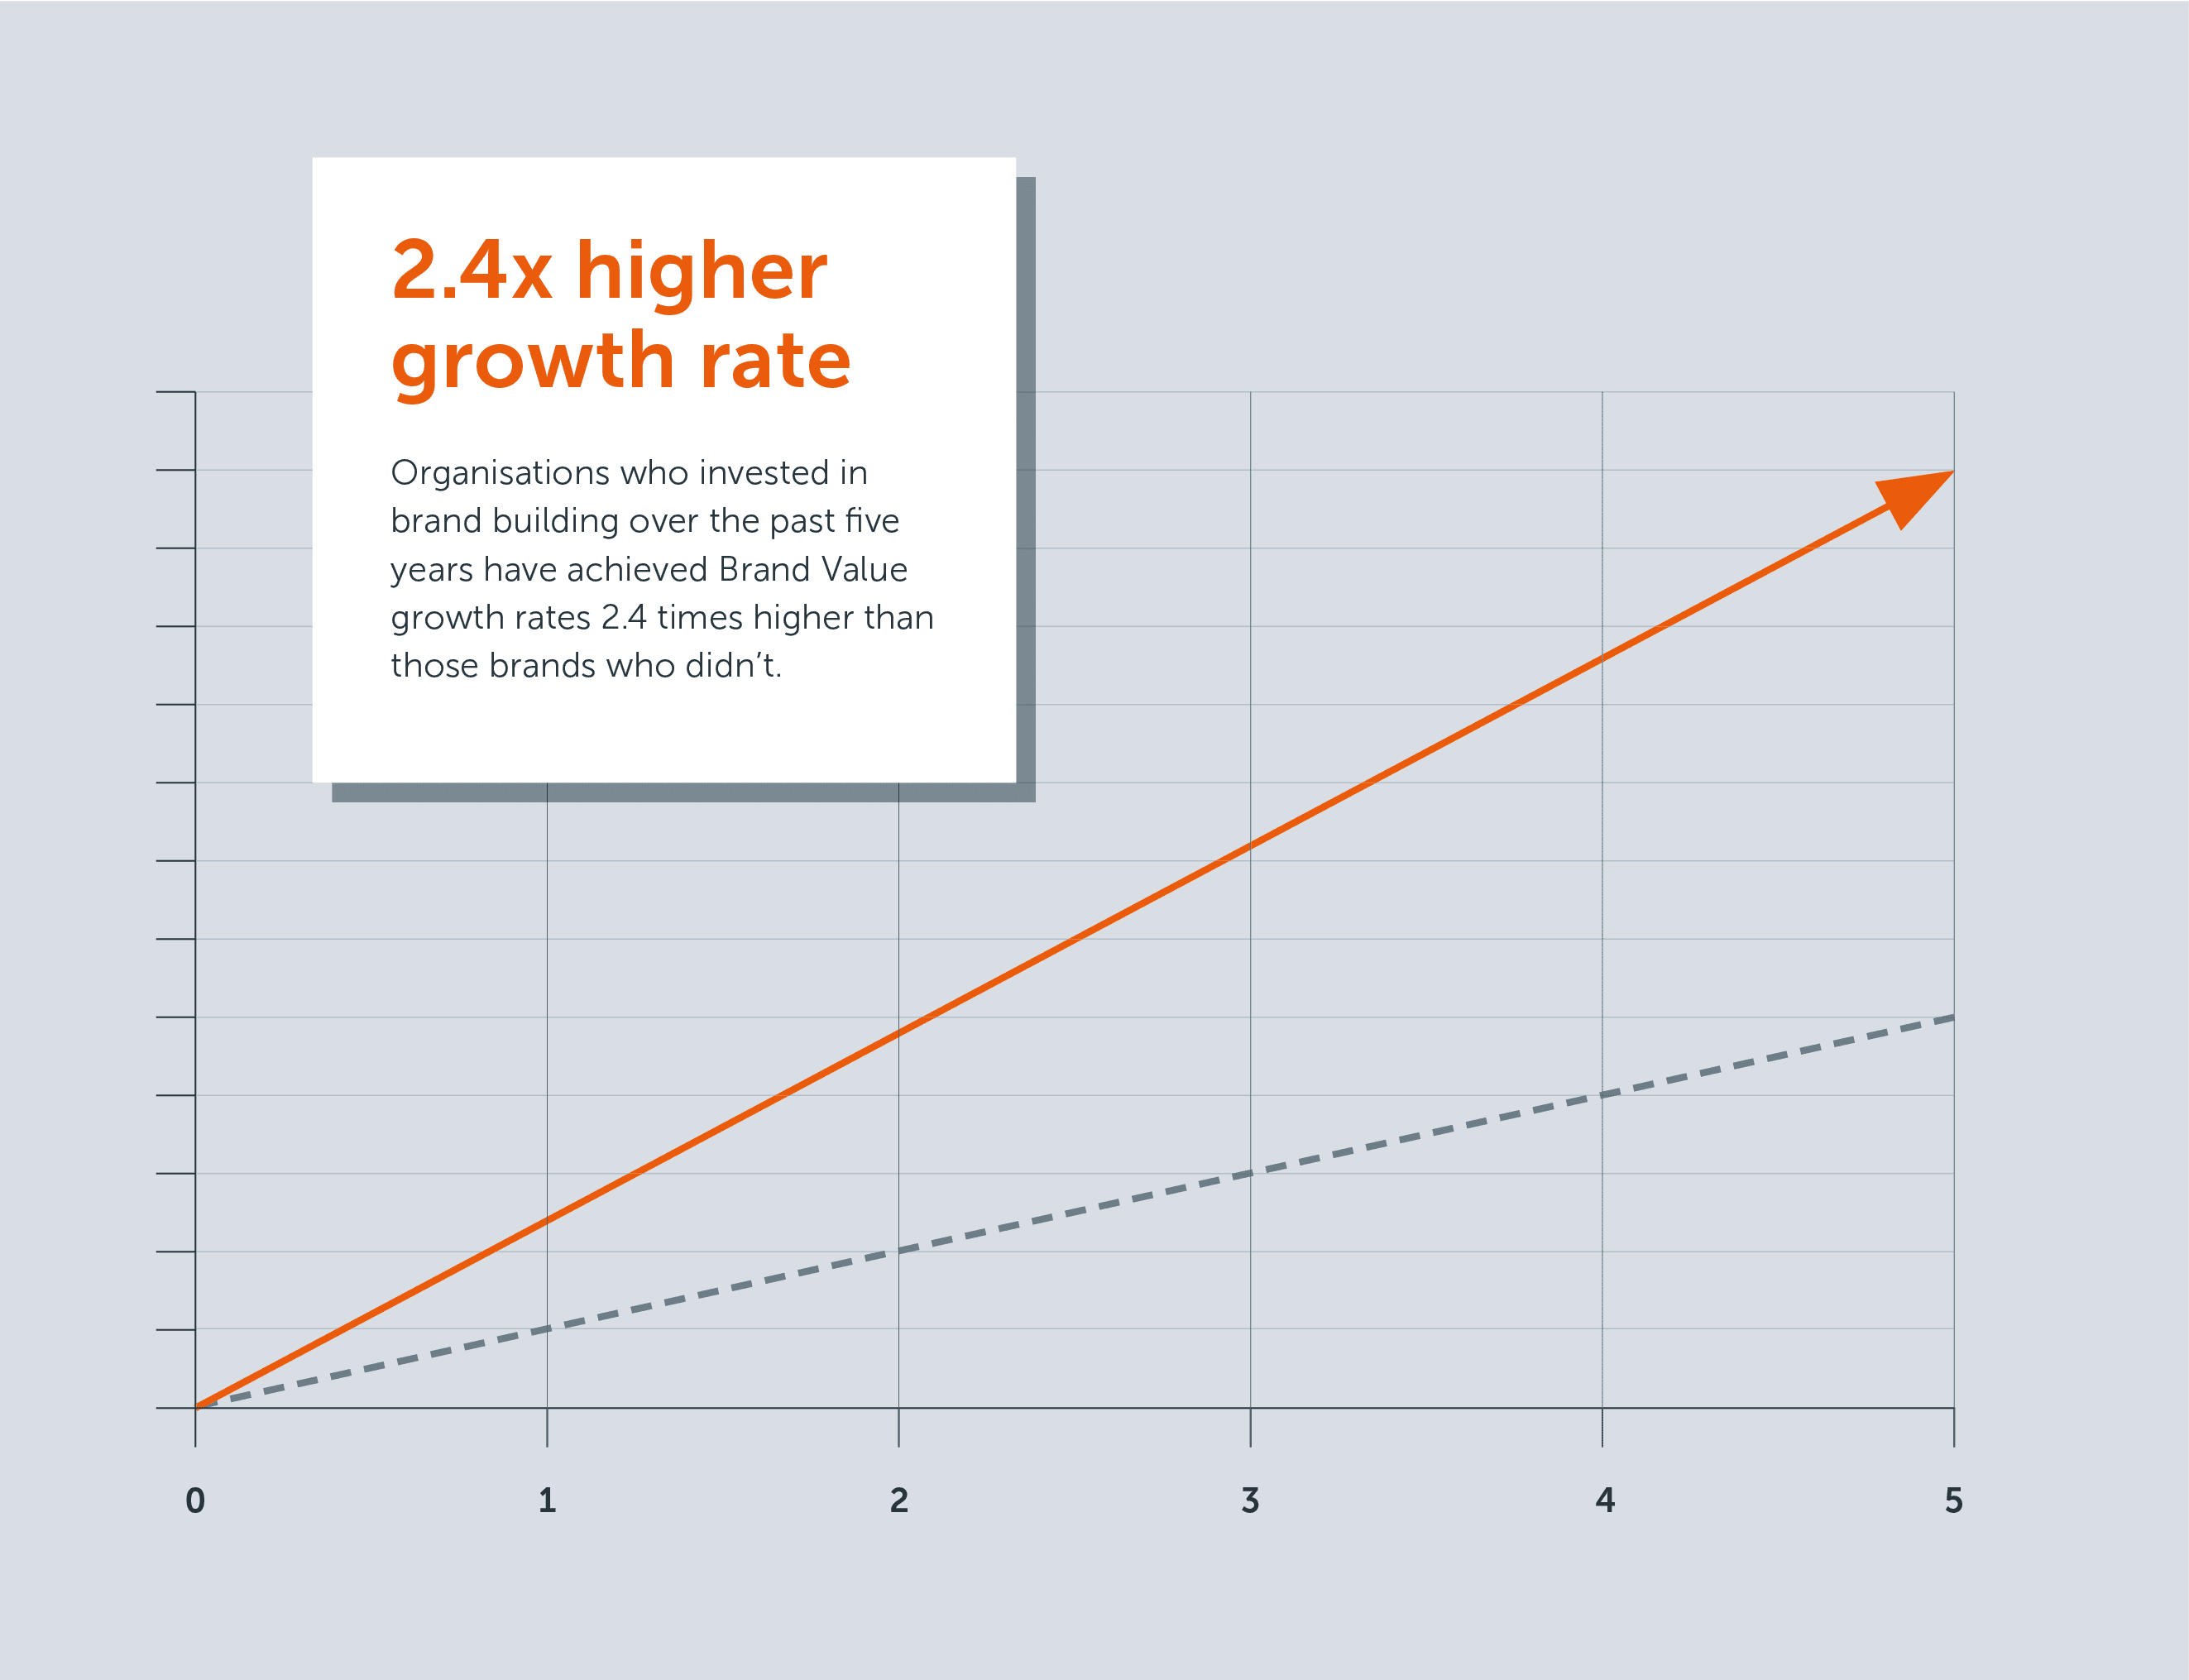 2.4x higher growth rate